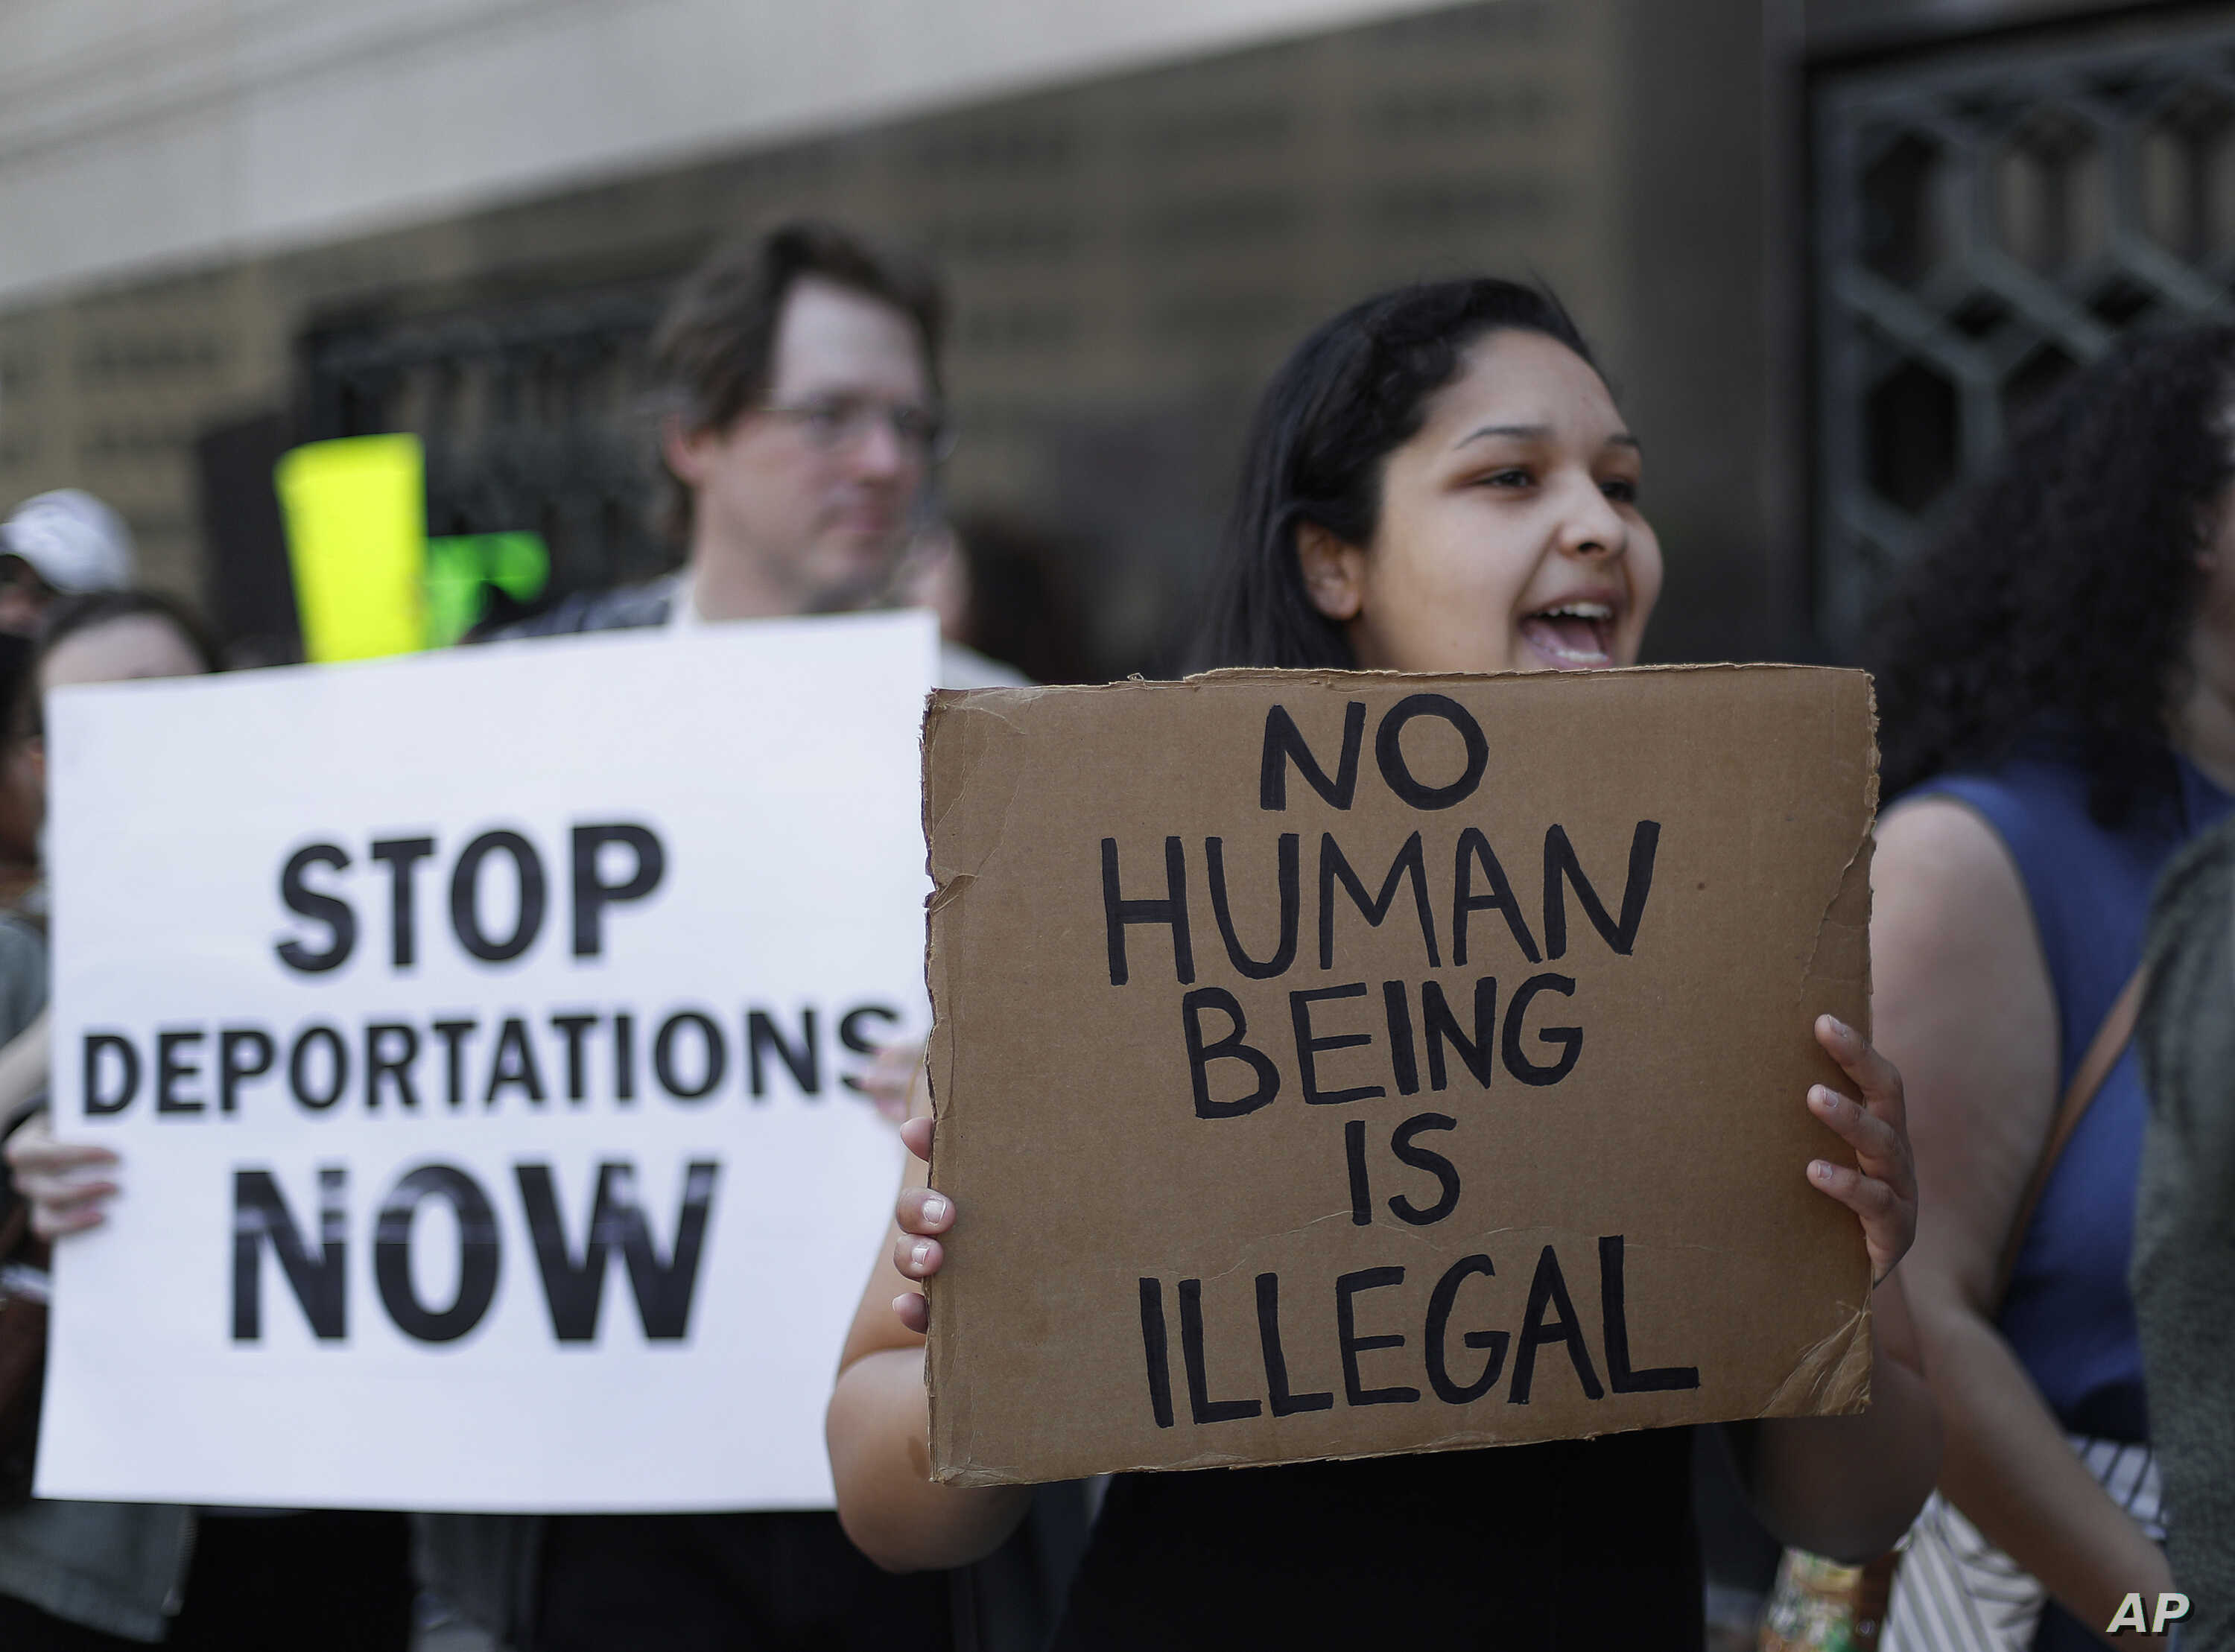 FILE - protesters rally outside a federal courthouse in Detroit. Protesters rallied in hopes public outcry will again delay the deportation of Jose Luis Sanchez-Ronquillo from the United States to Mexico.